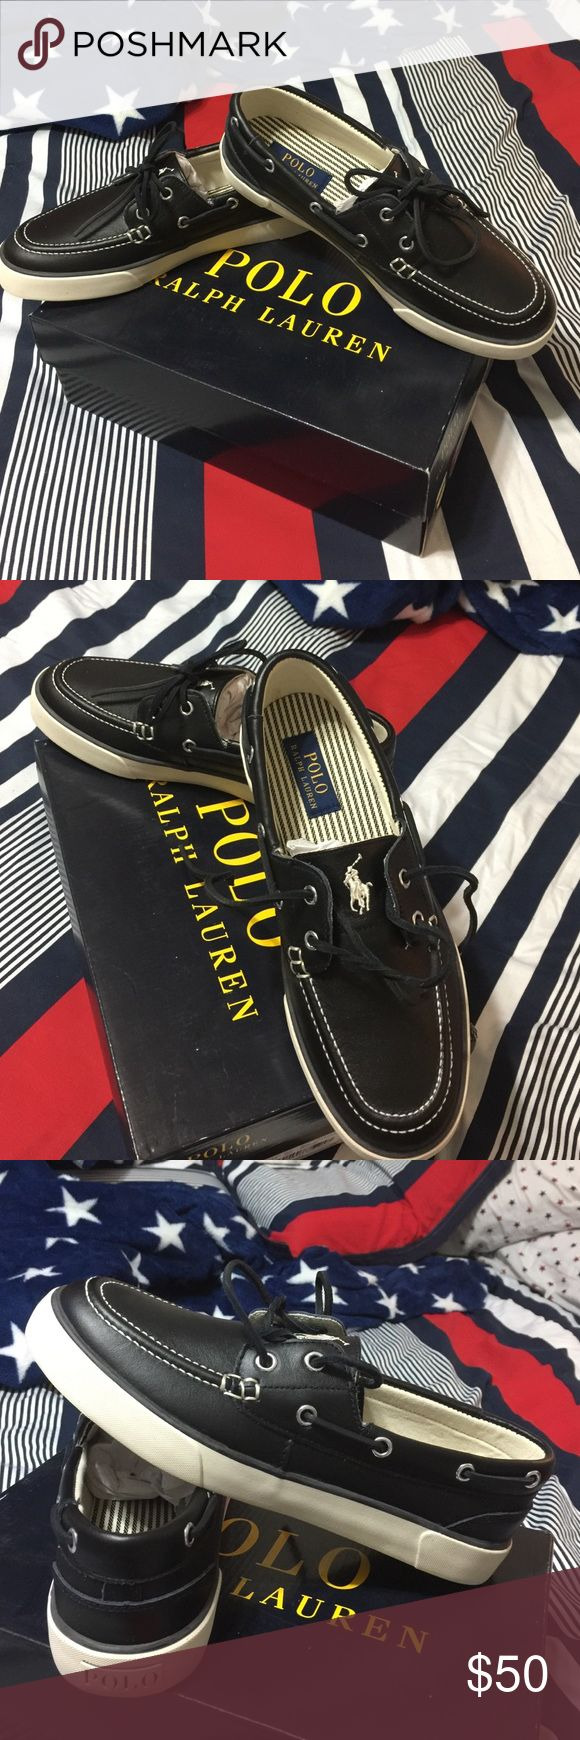 POLO RALPH LAUREN MEN SIZE 7.5 BEAUTIFUL BLACK SOFT LEATHER POLO RALPH LAUREN MEN SIZE 7.5 Polo by Ralph Lauren Shoes Loafers & Slip-Ons